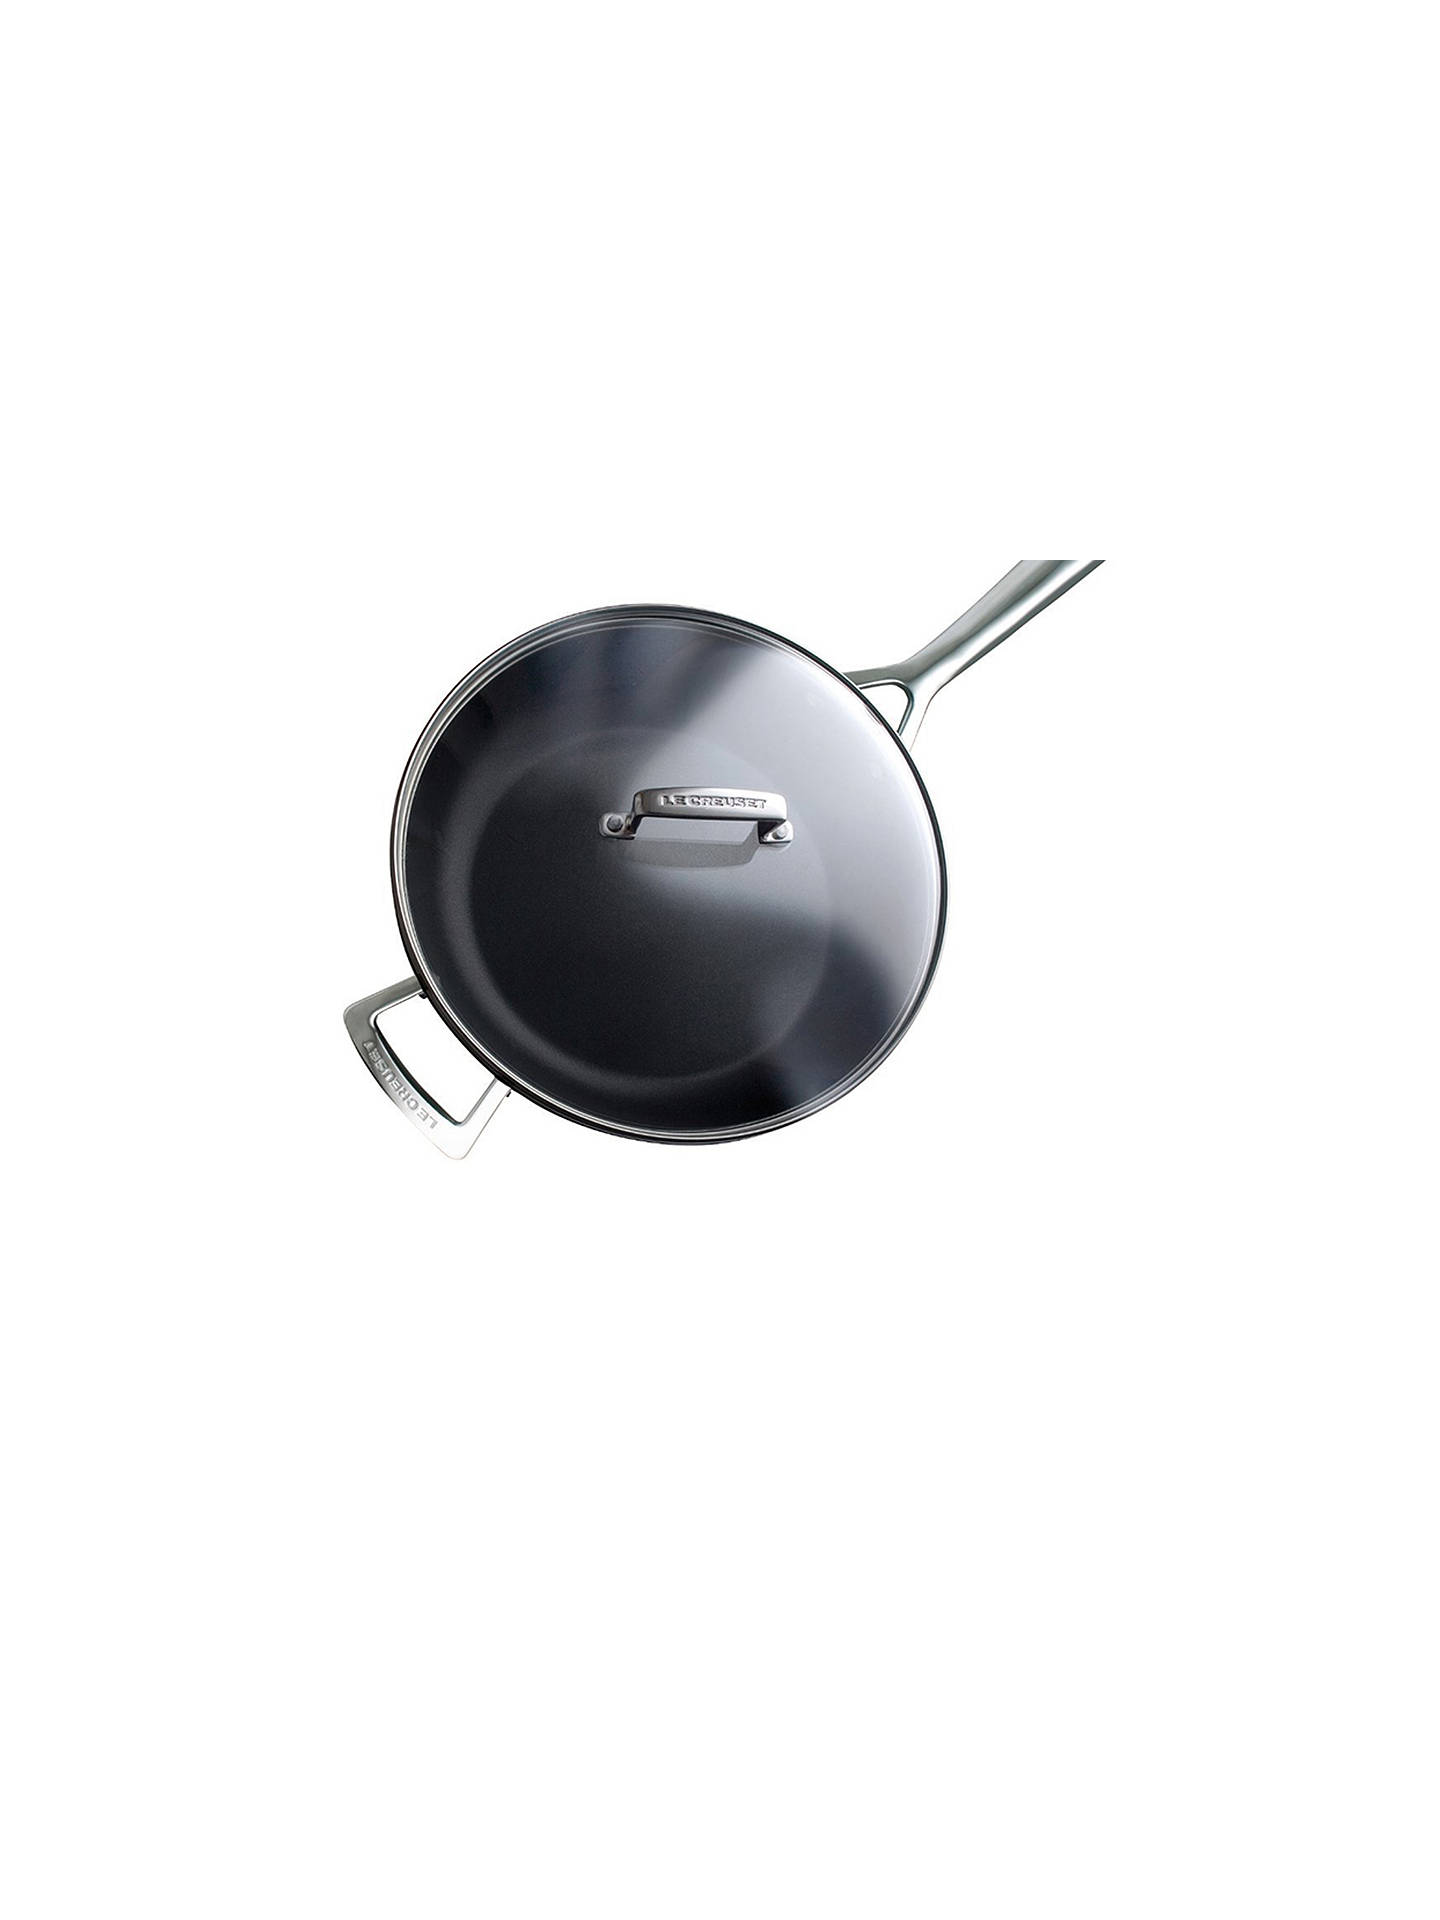 BuyLe Creuset Toughened Non-Stick Glass Lids, 28cm Online at johnlewis.com